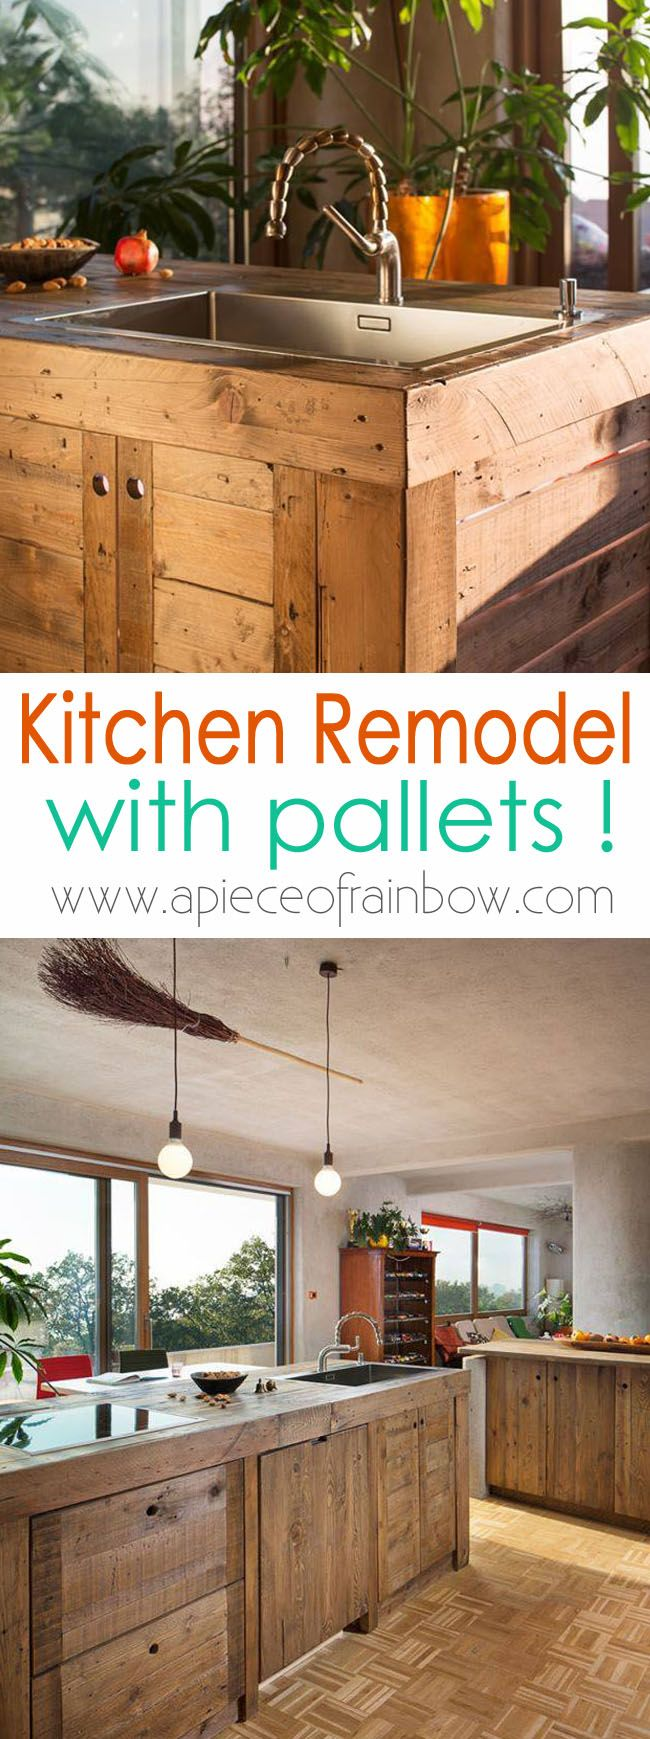 A stunning kitchen remodel created with pallets! Take a tour and check out 5 detailed tips and ideas on how to work with pallets in a kitchen remodel!  - A Piece Of Rainbow